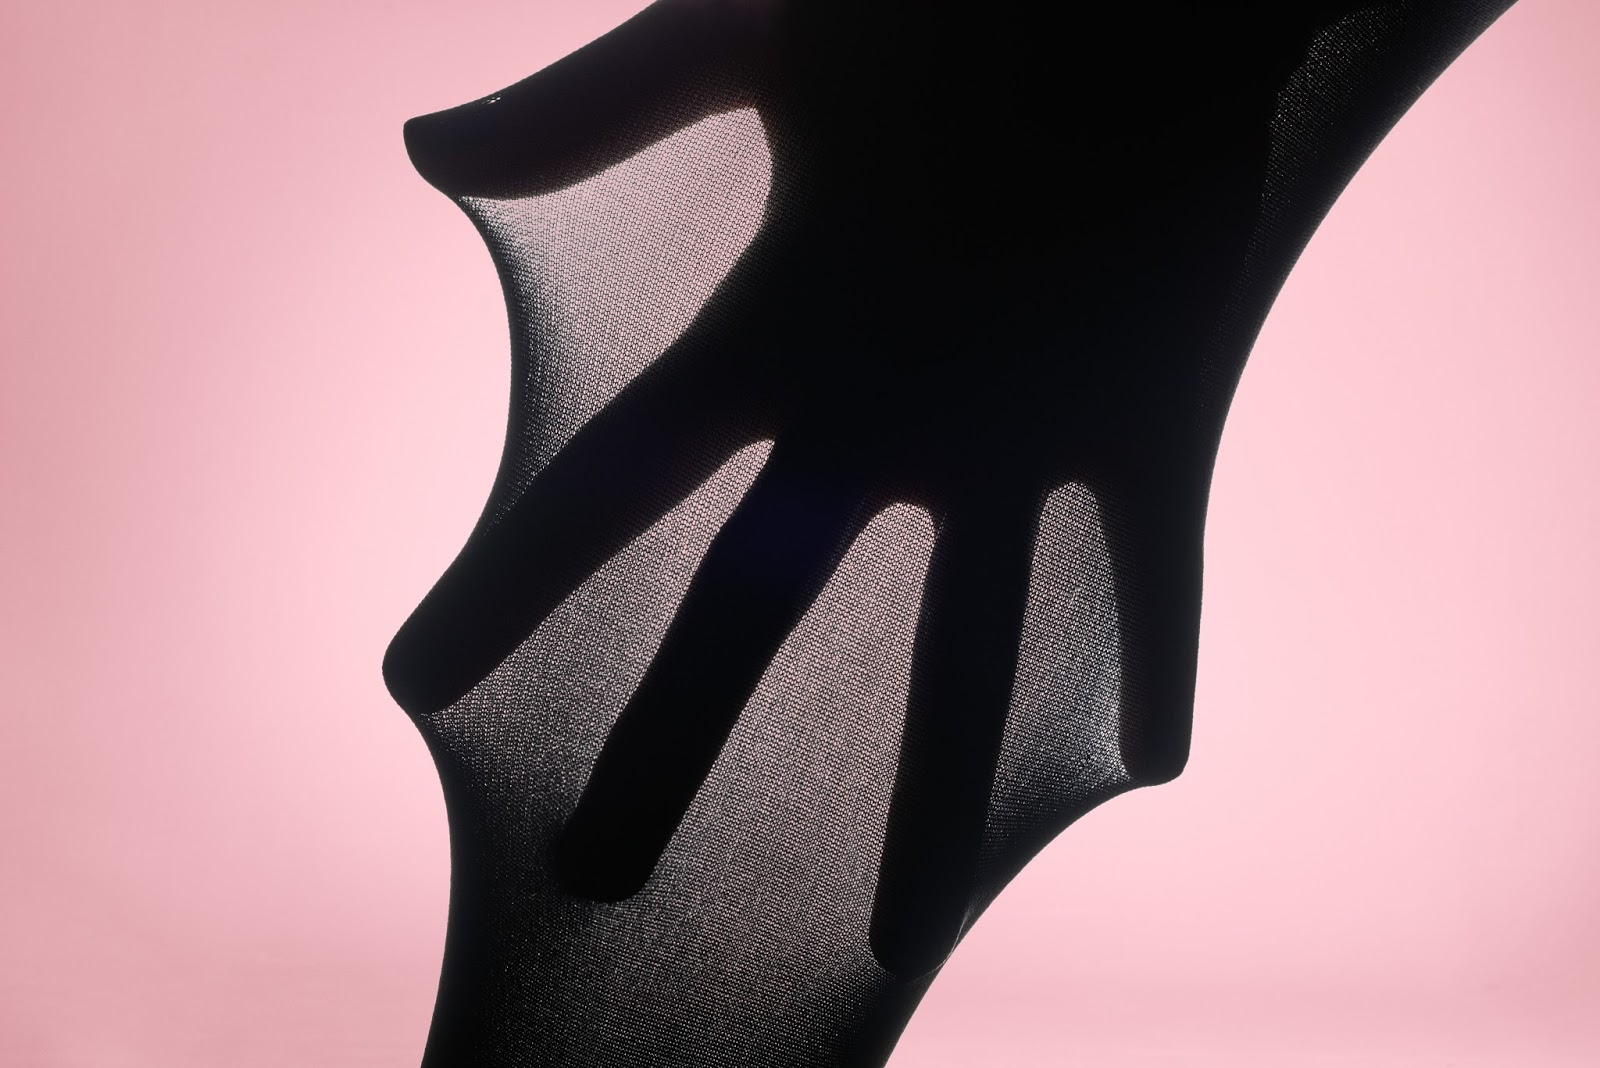 8a0bf1c706052 The range of tights developed by Heist were created after an extensive  consultation exercise with the aim to develop a perfect and luxurious pair  of black ...